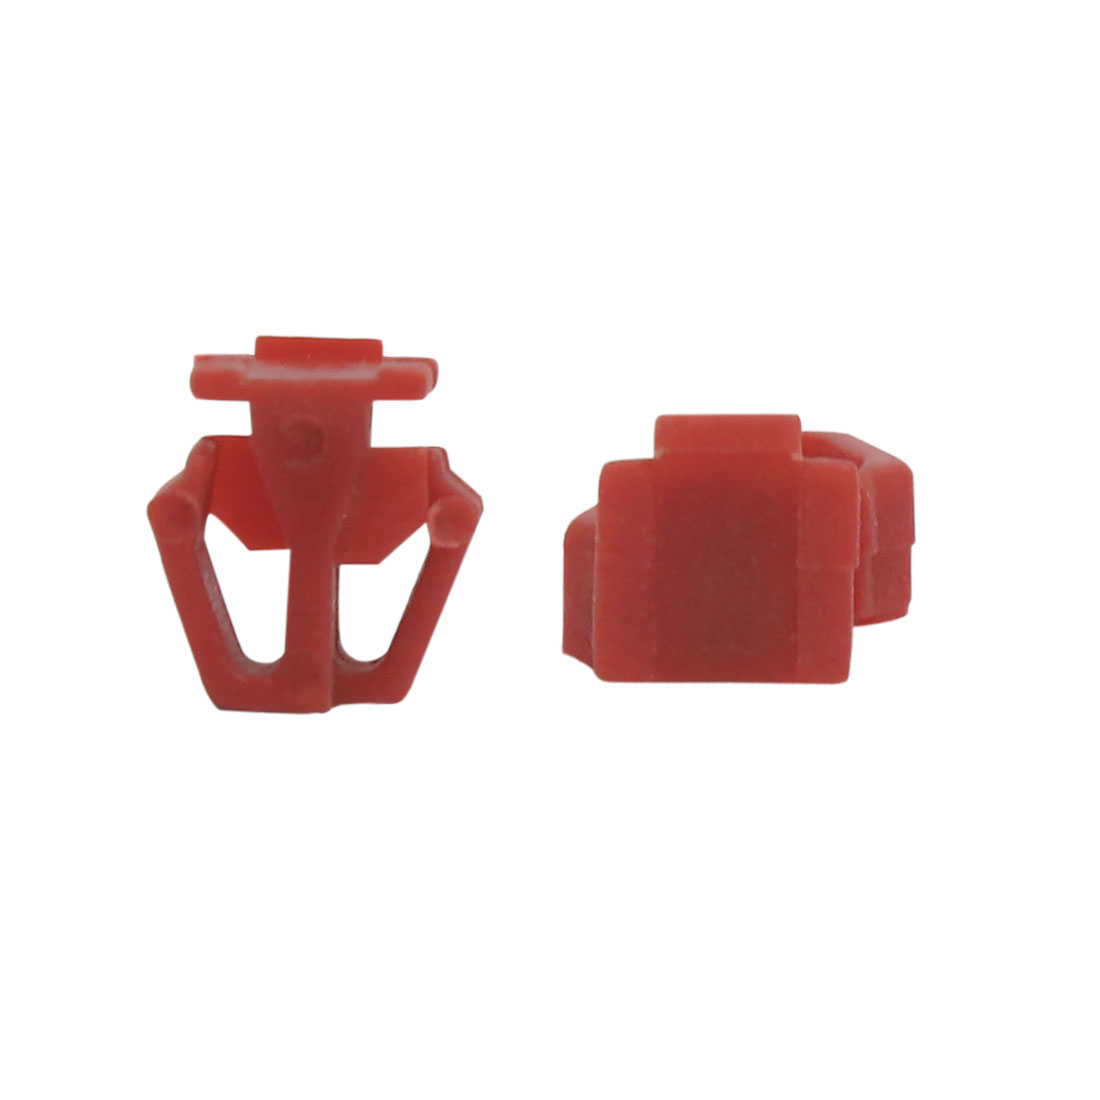 50Pcs Red Plastic Rivets Bumper Fender Clips Arch Moulding Fastener 13mm for Car